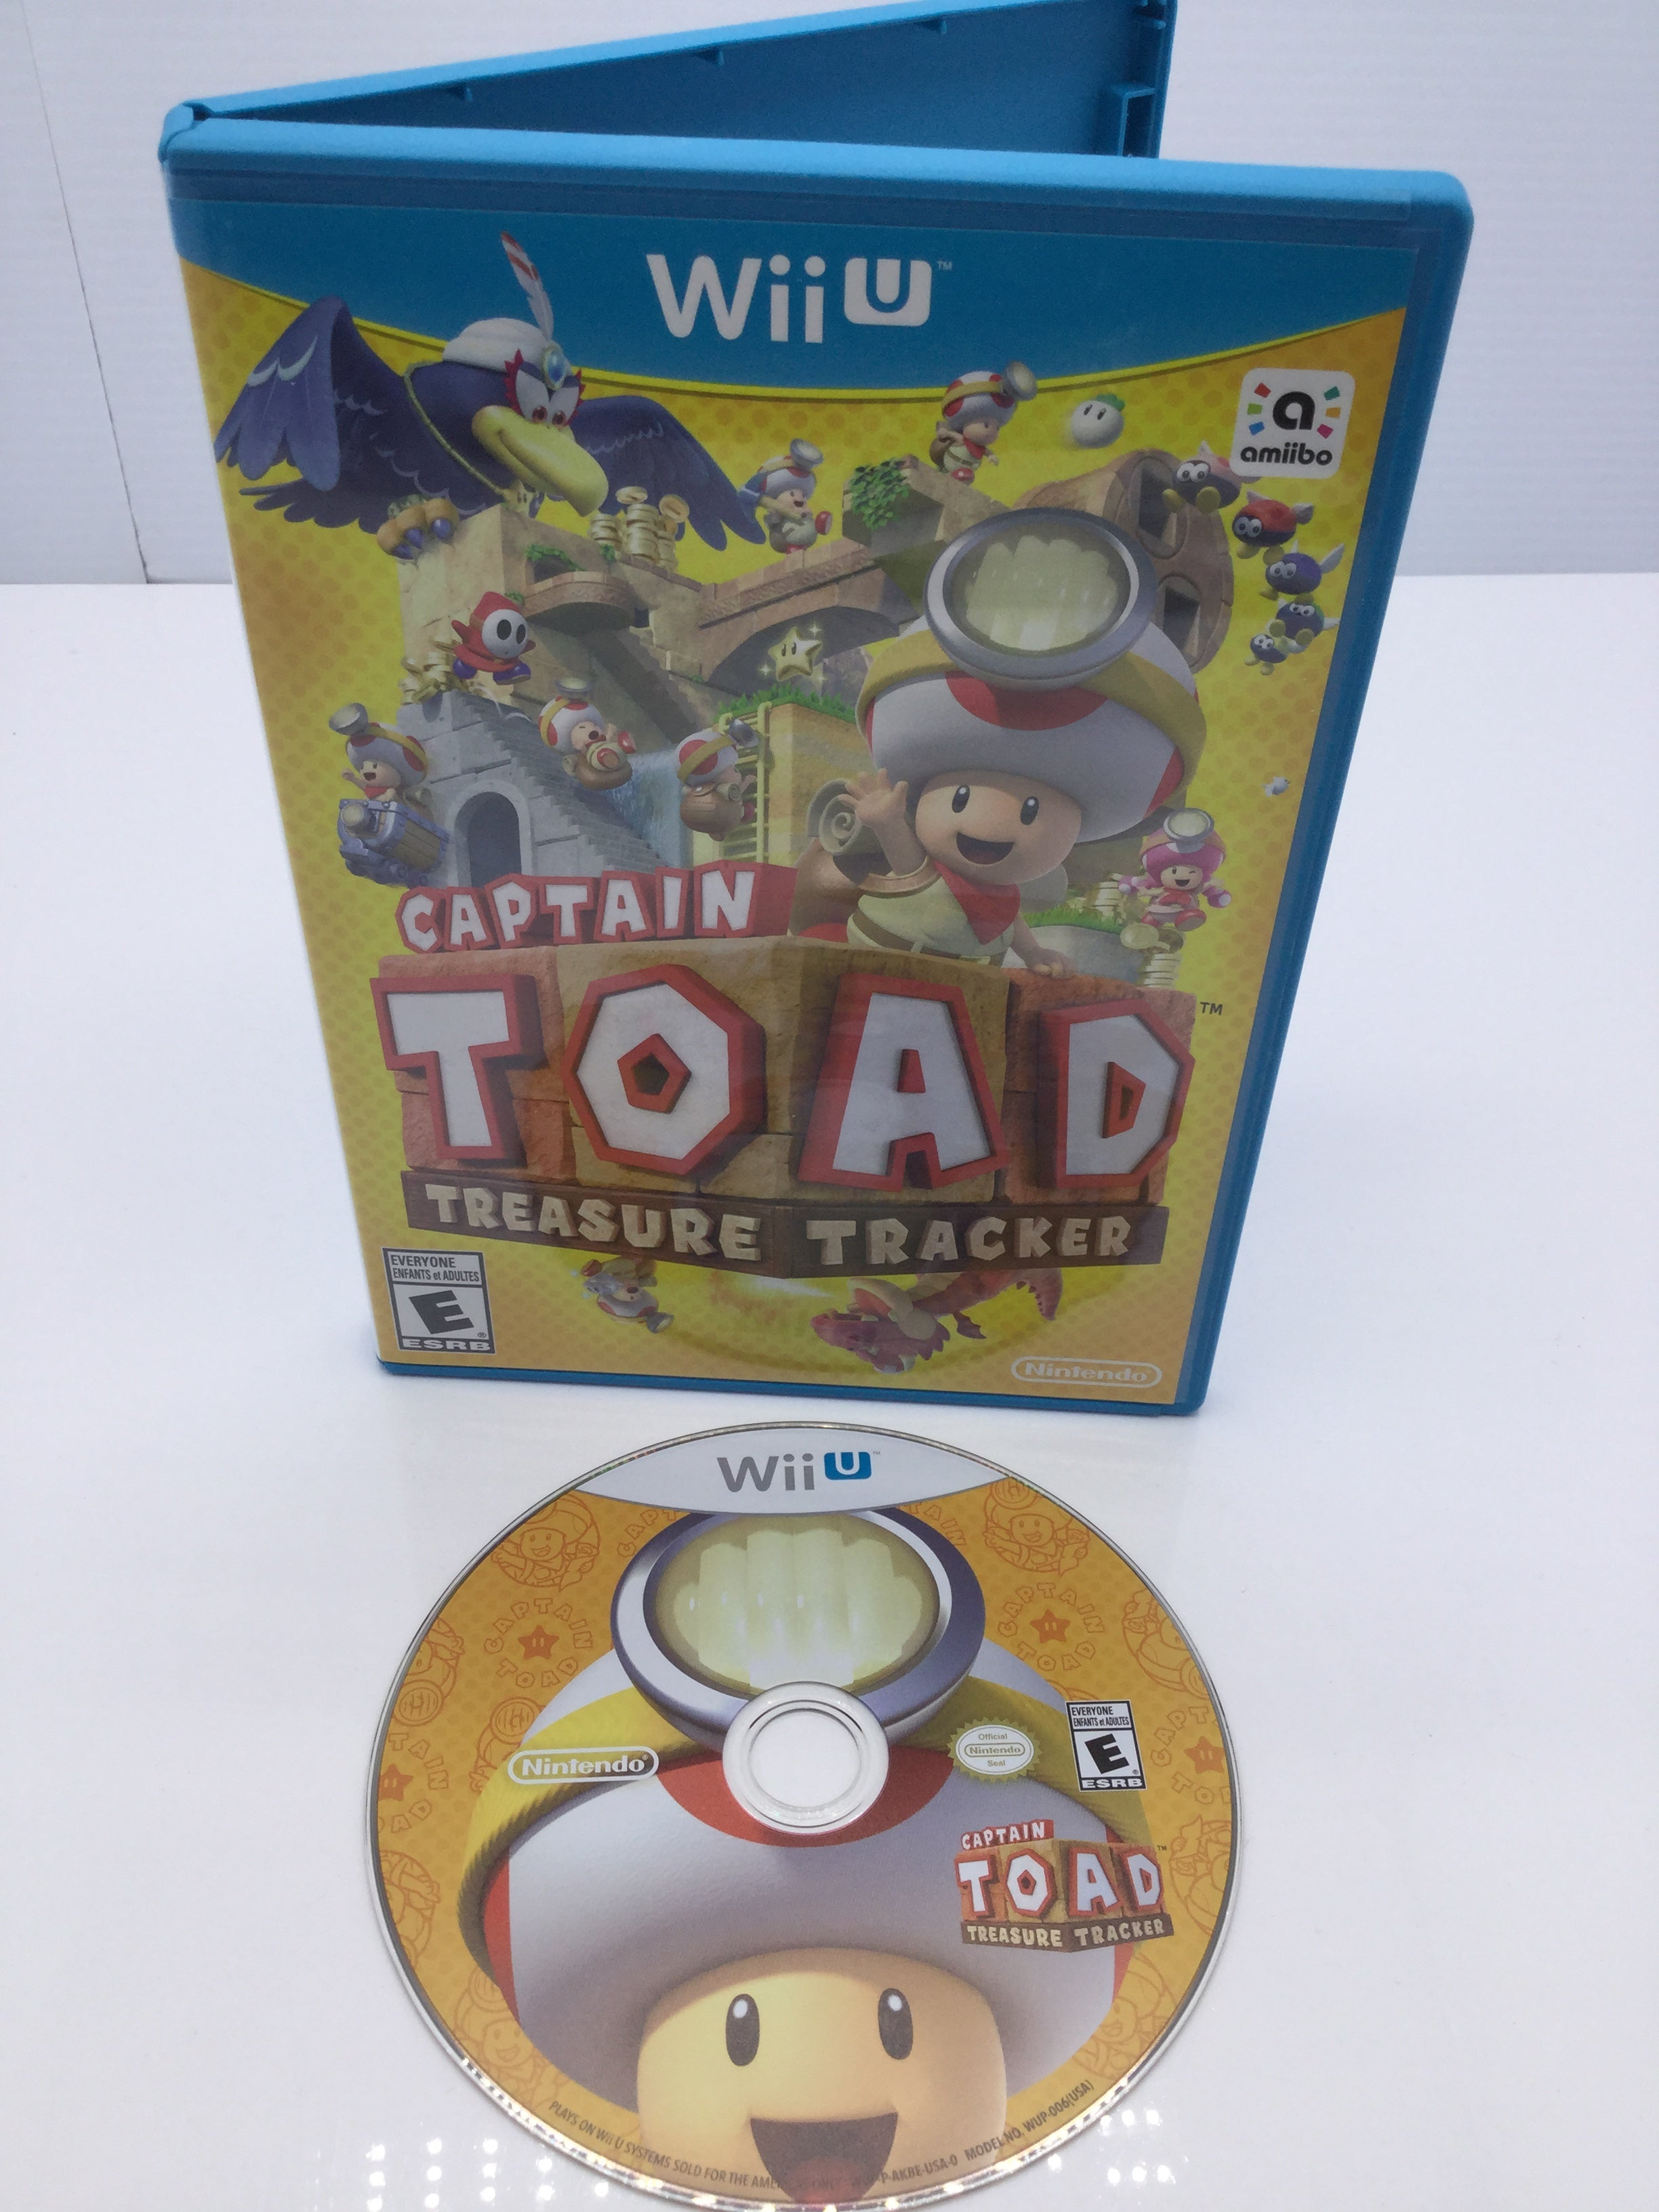 Nintendo WiiU - Captain Toad Treasure Tracker